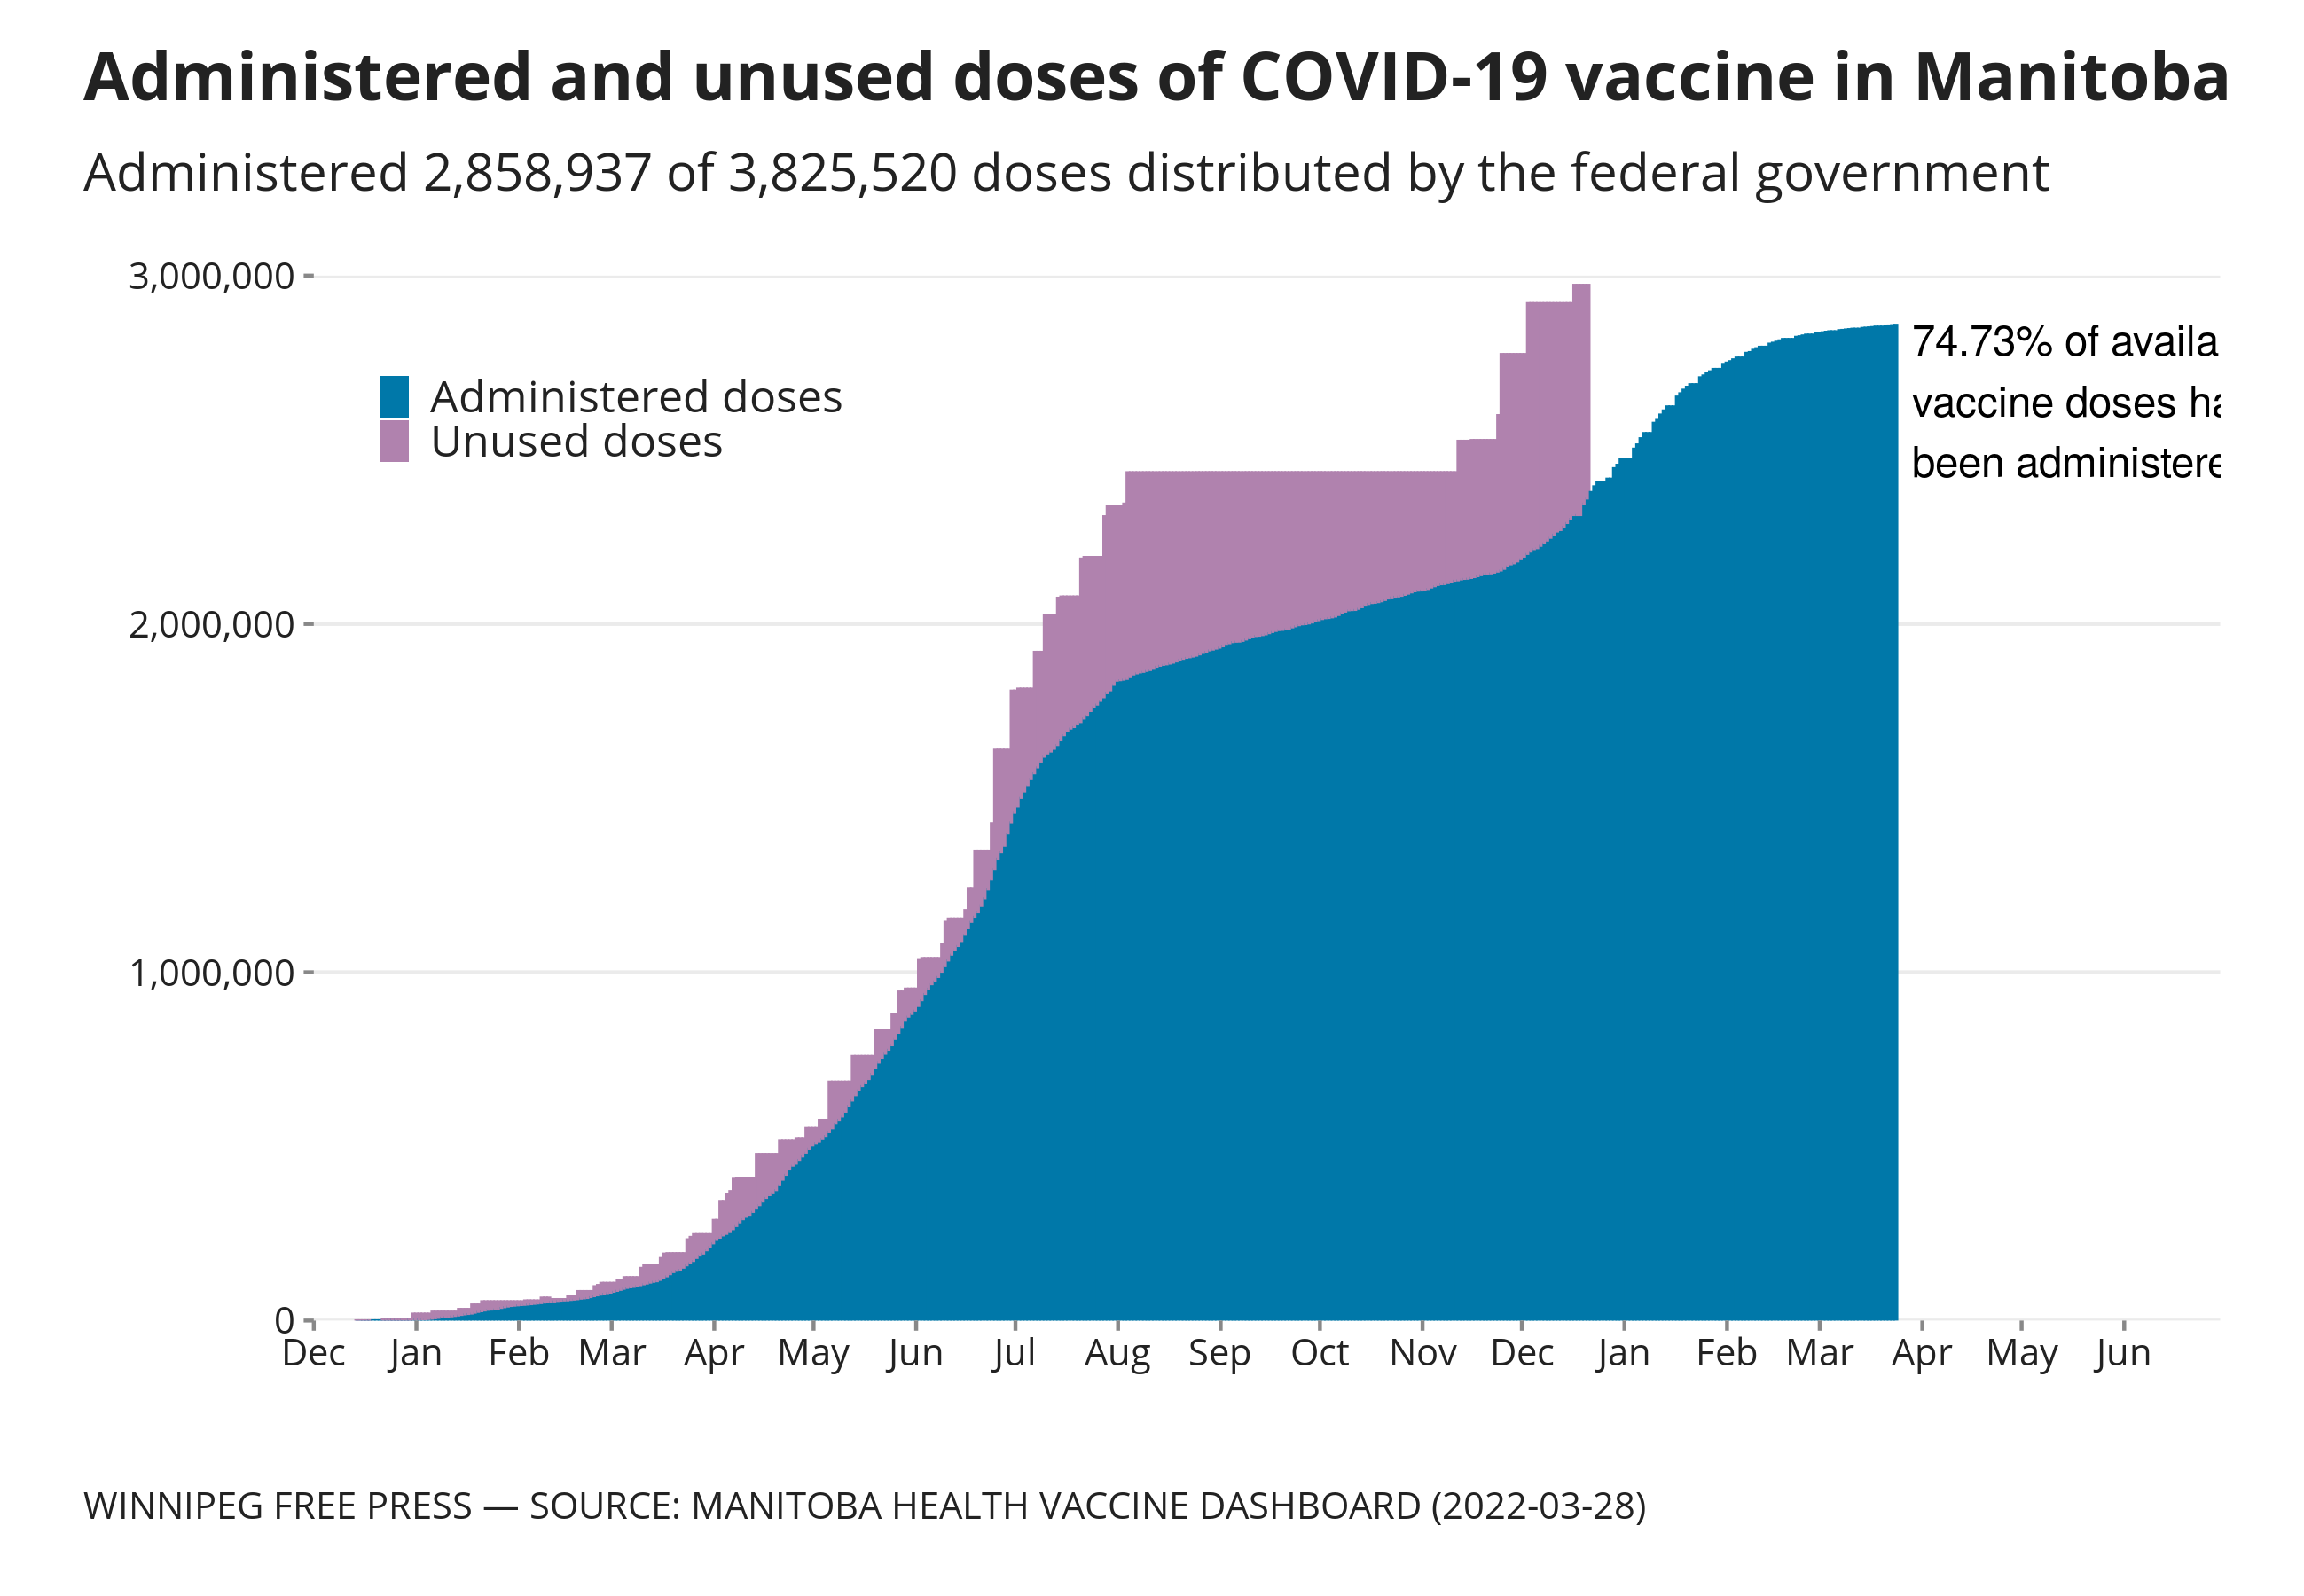 Chart showing adminisitered and unused COVID-19 vaccine doses in Manitoba